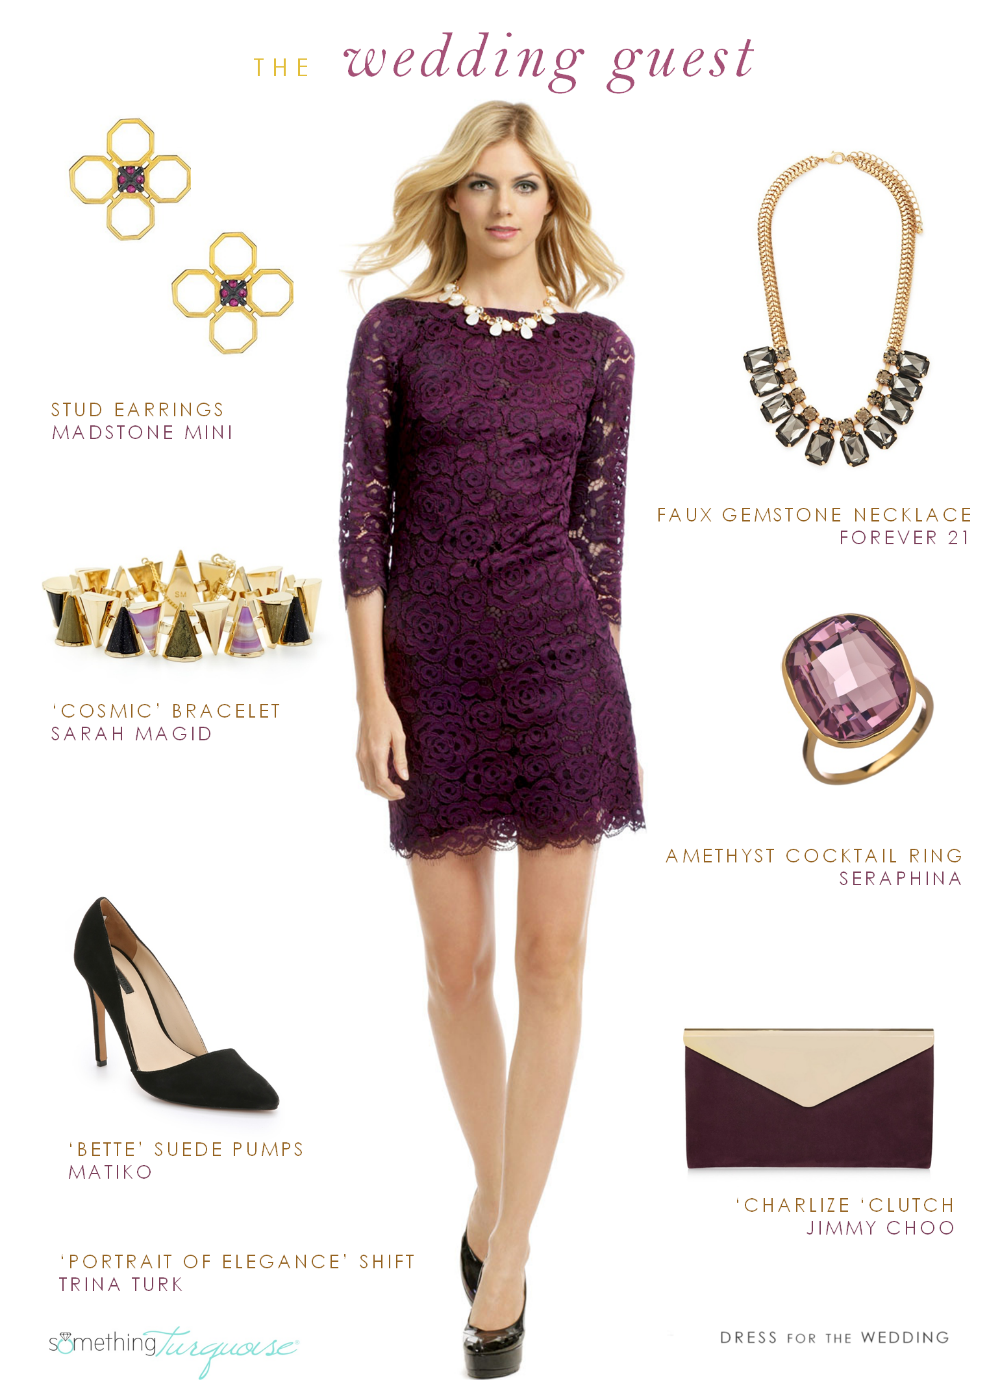 Fall wedding fashion ideas from dress for the wedding for What dress to wear to a fall wedding